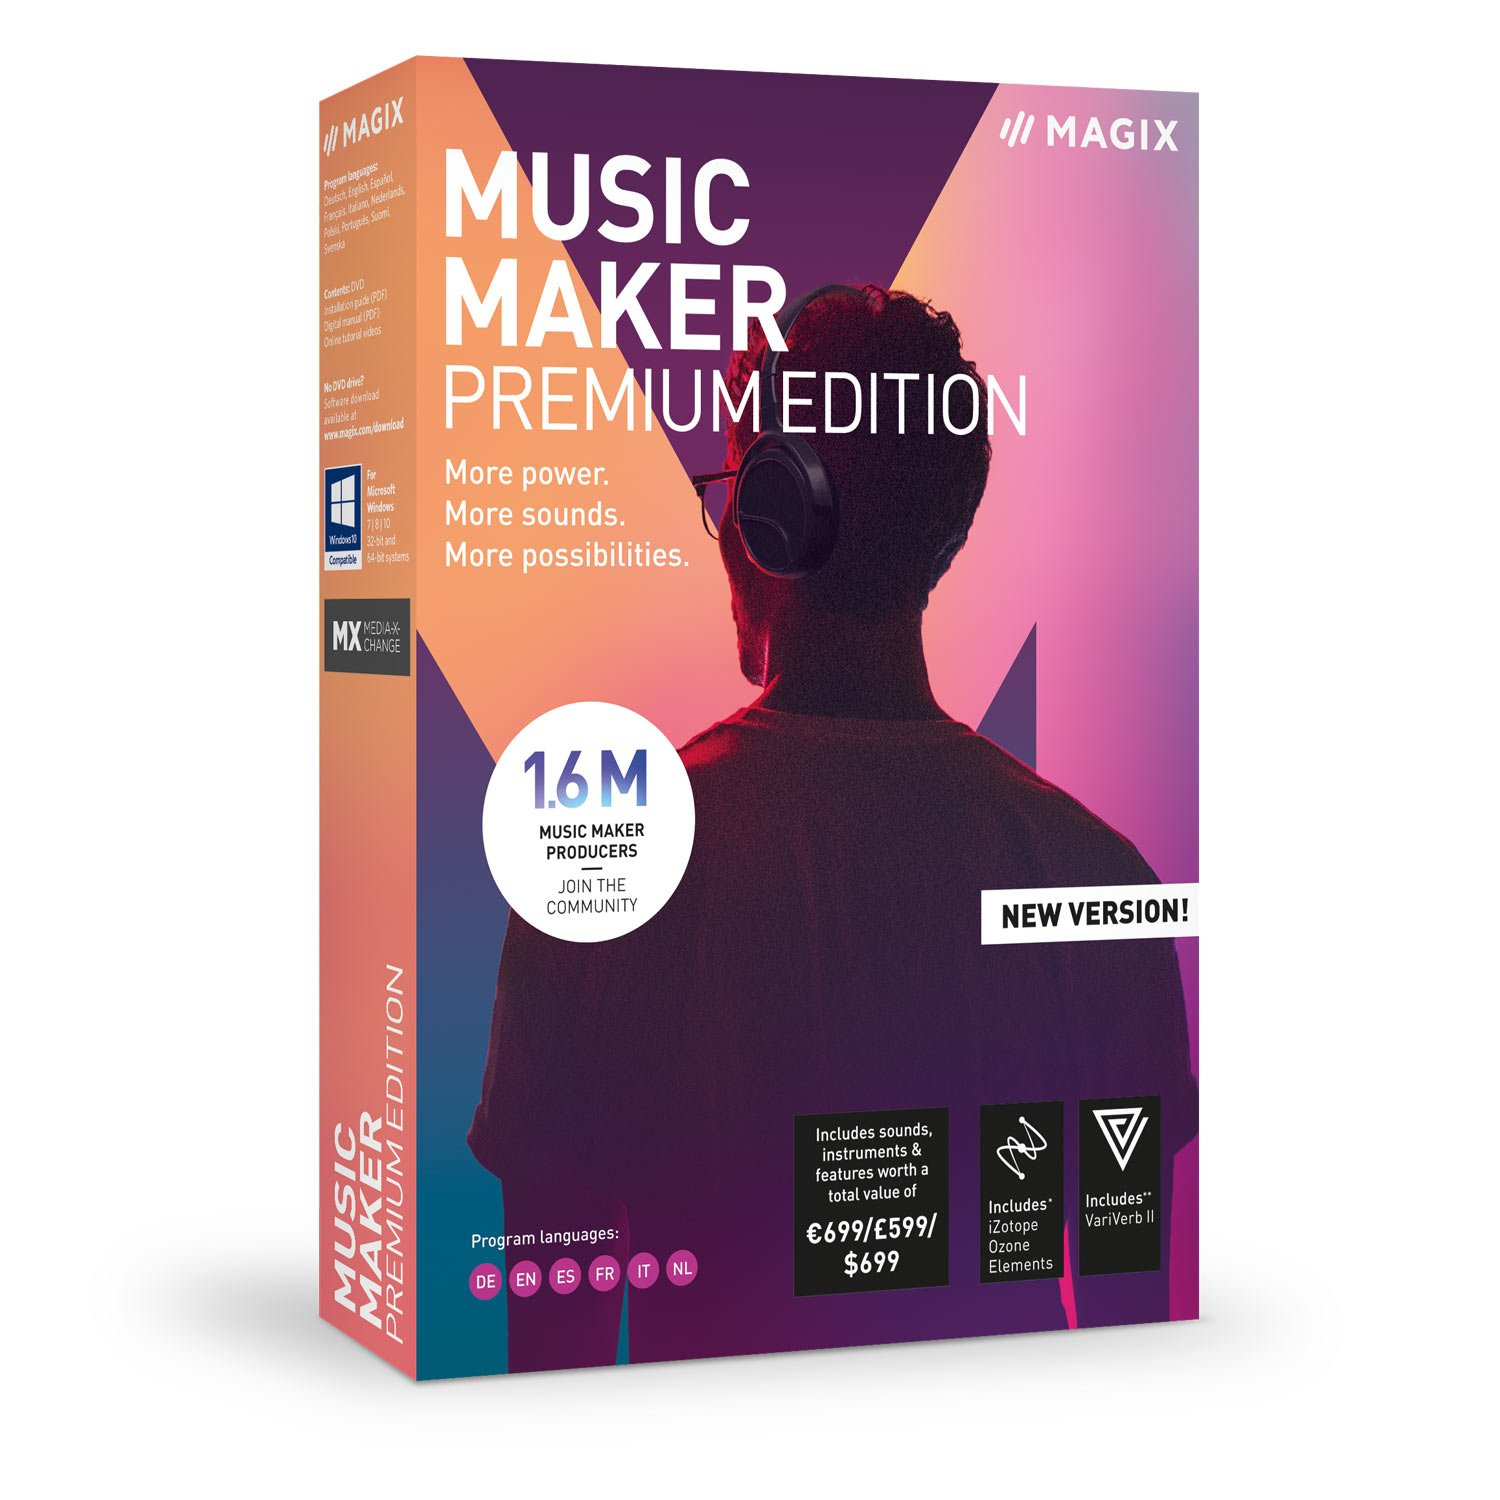 Magix UK Music Maker - 2019 Premium Edition - Our Most Popular Music Making  Program! More power  More loops  More creative possibilities